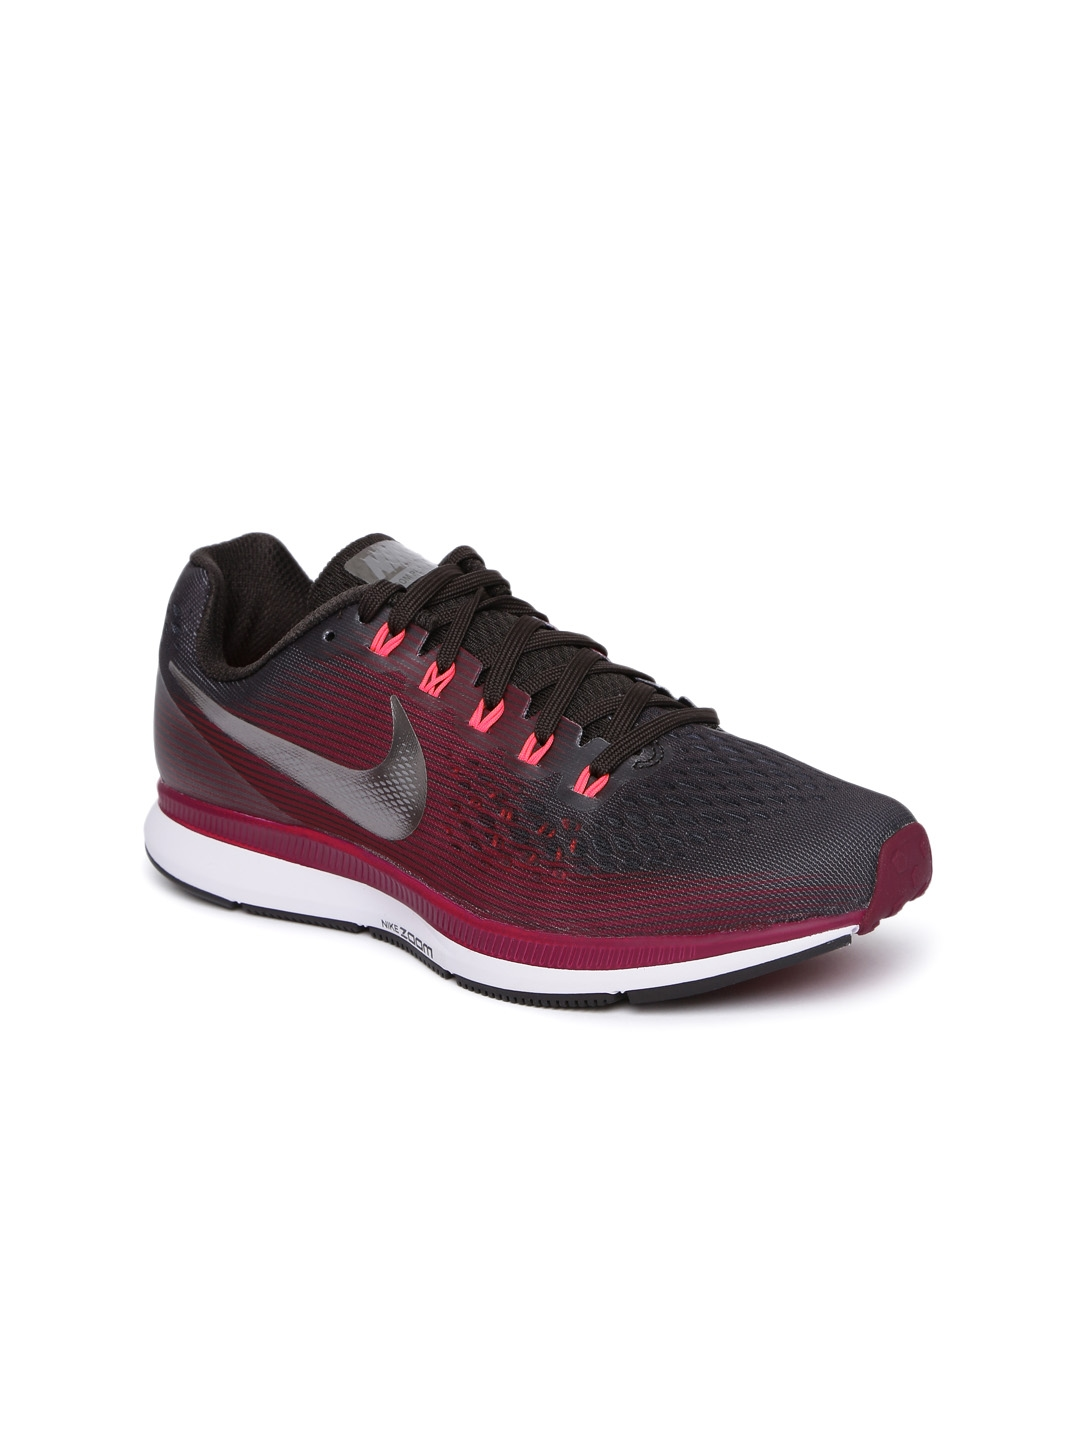 2ef08280bfbd1 Buy Nike Women Burgundy W AIR ZOOM PEGASUS 34 GEM Running Shoes ...